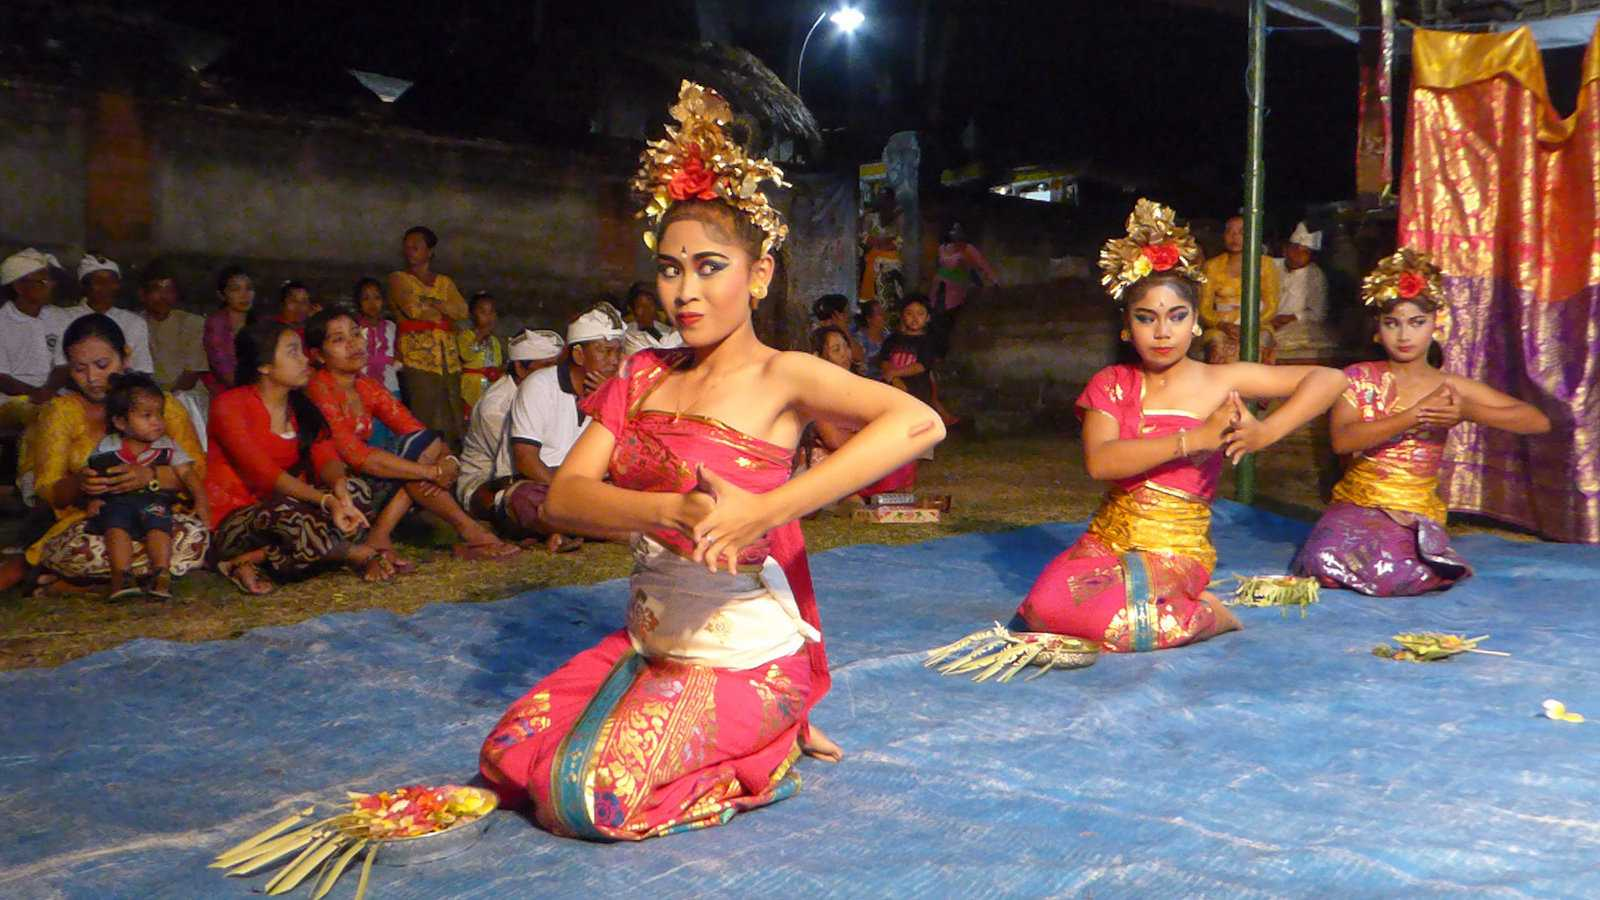 Indonesia has a rich culture and we loved getting to see some traditional dances during our time in Ubud